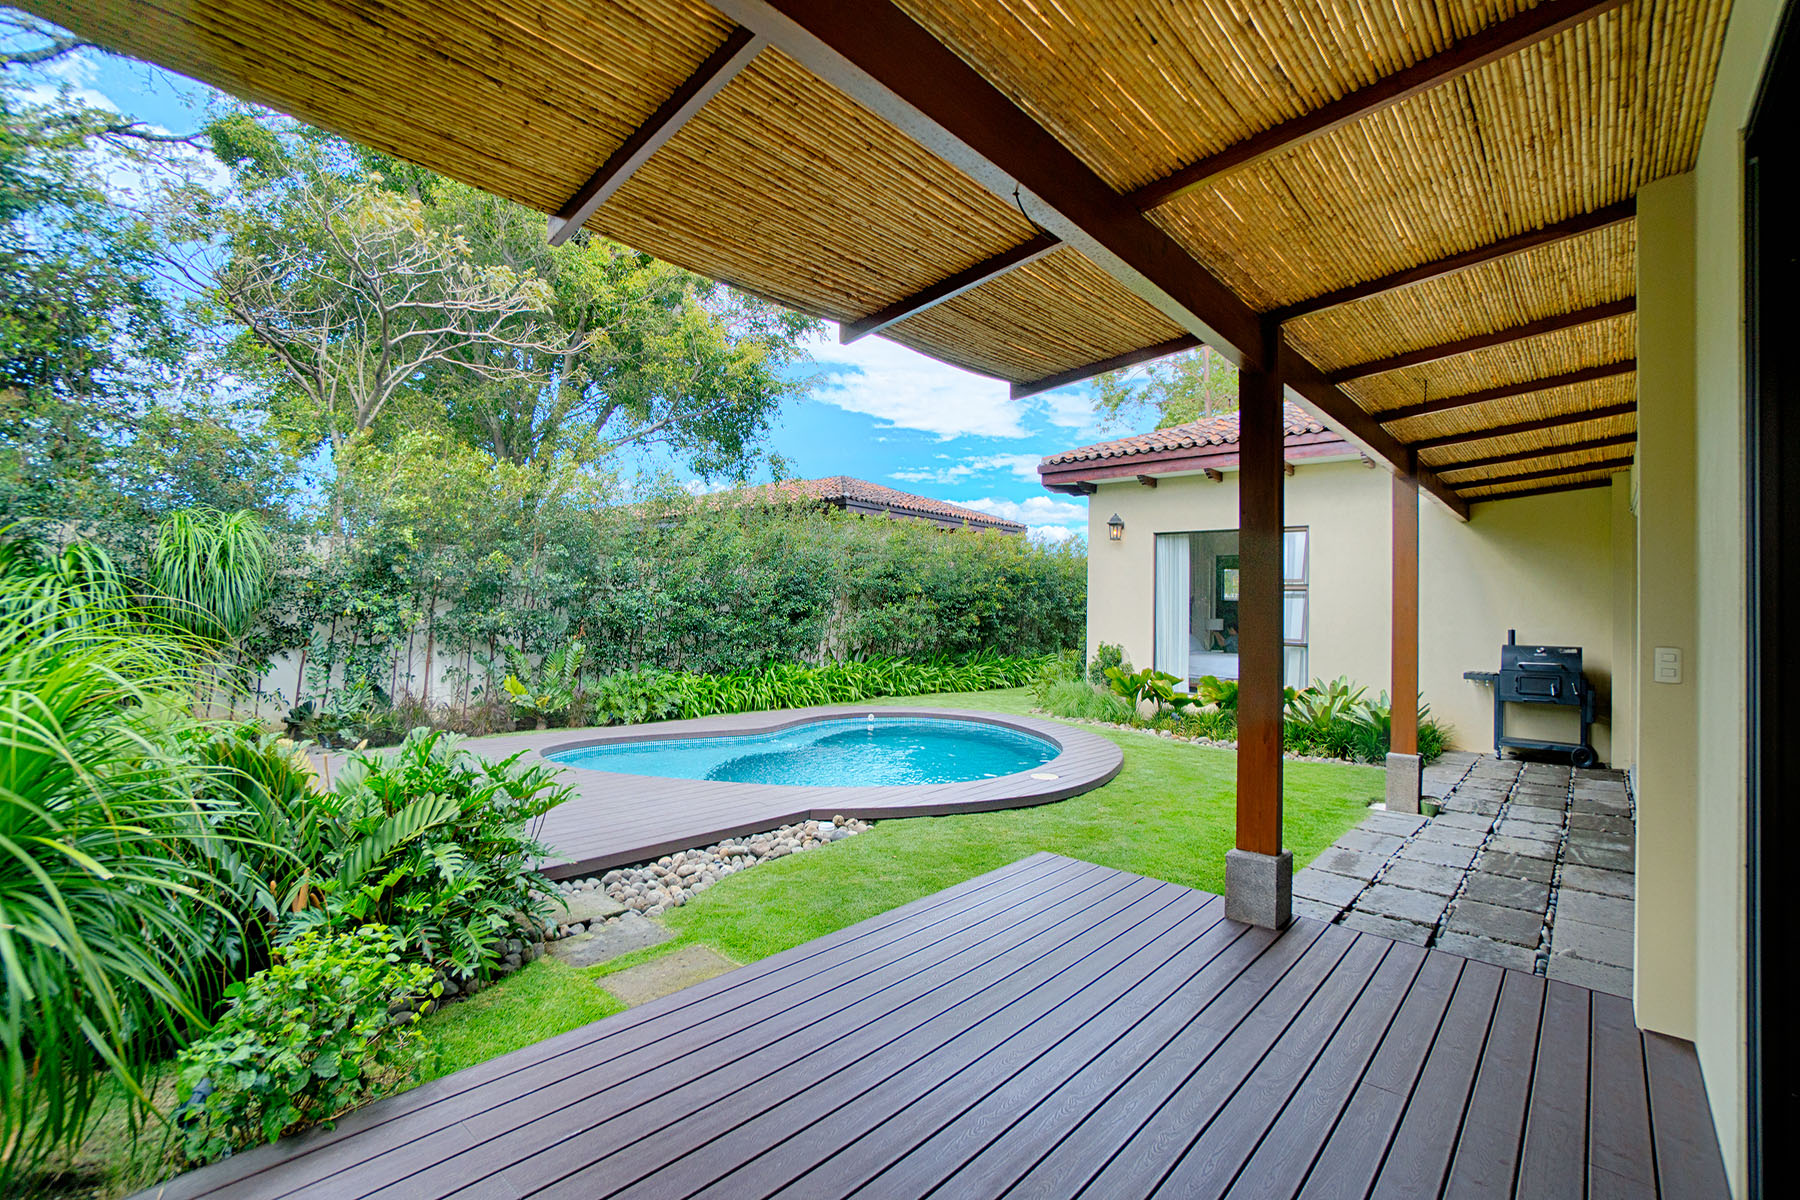 Additional photo for property listing at Single Story Home in Exclusive Gated Community Santa Ana, San Jose Costa Rica